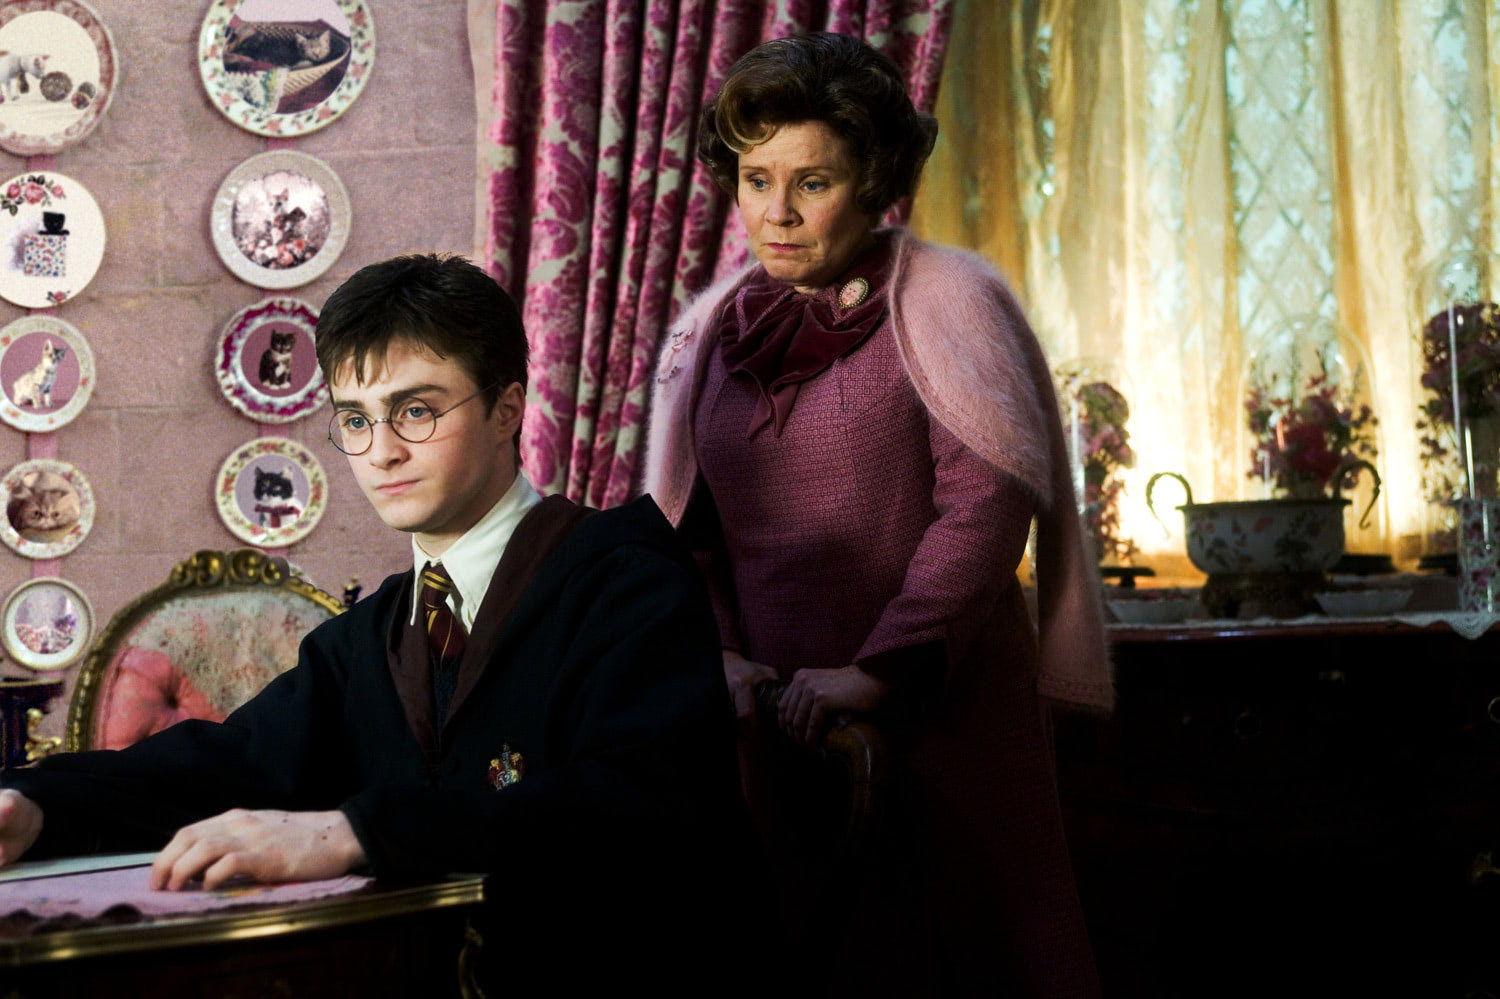 Umbridge punishes Harry